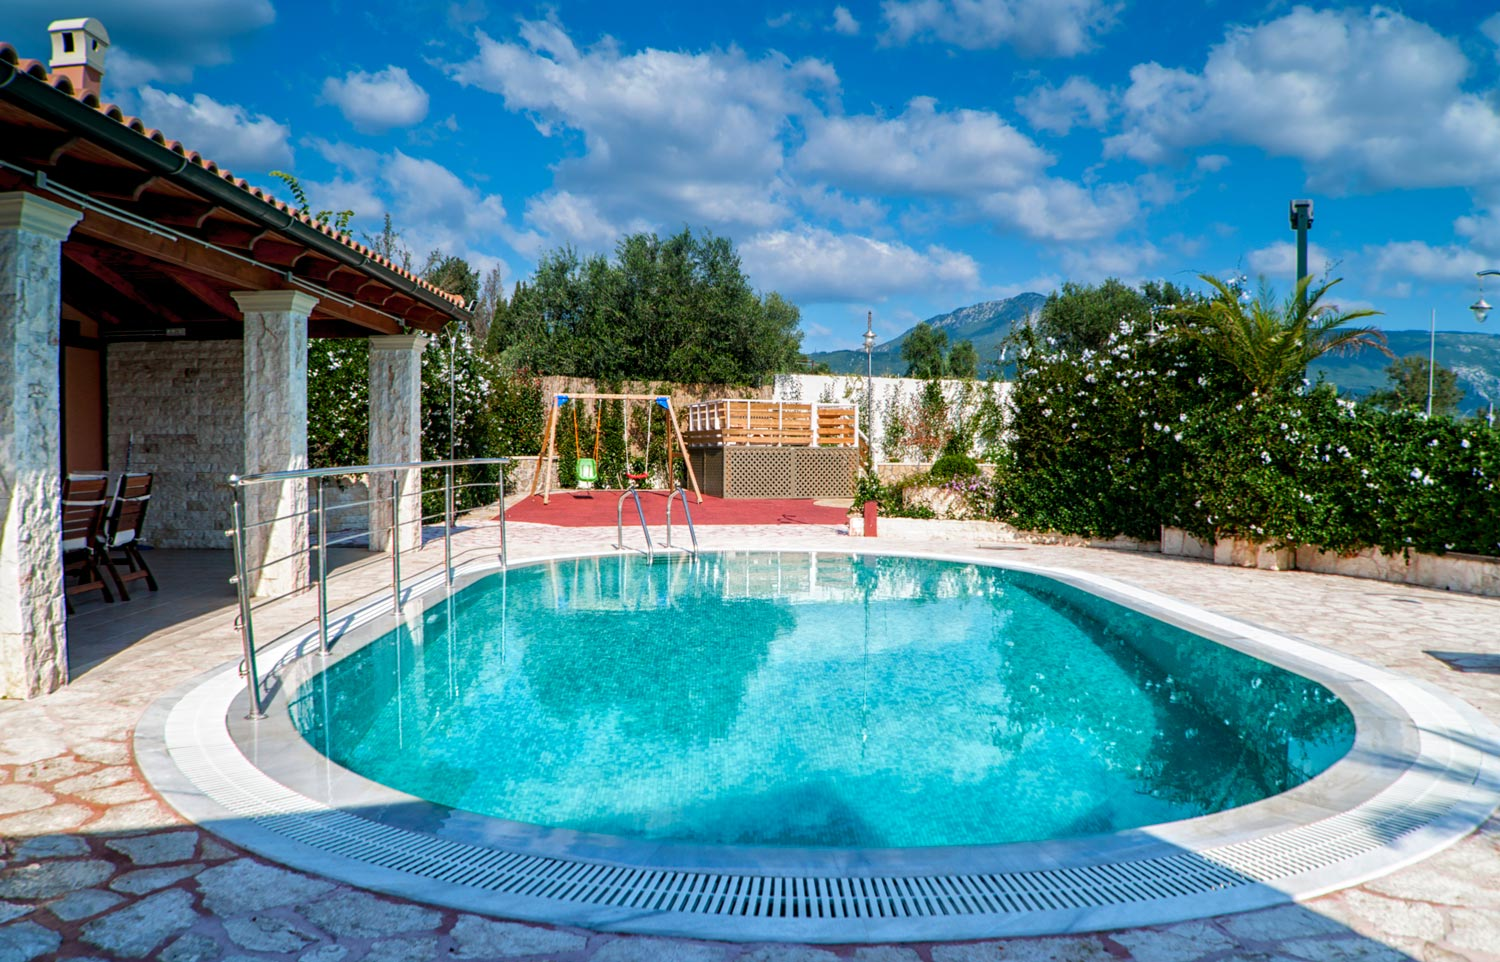 Luxury Holiday Villa With Pool Emily Family Luxury Holiday Pool Airbnb Villa Dassia Corfu 26